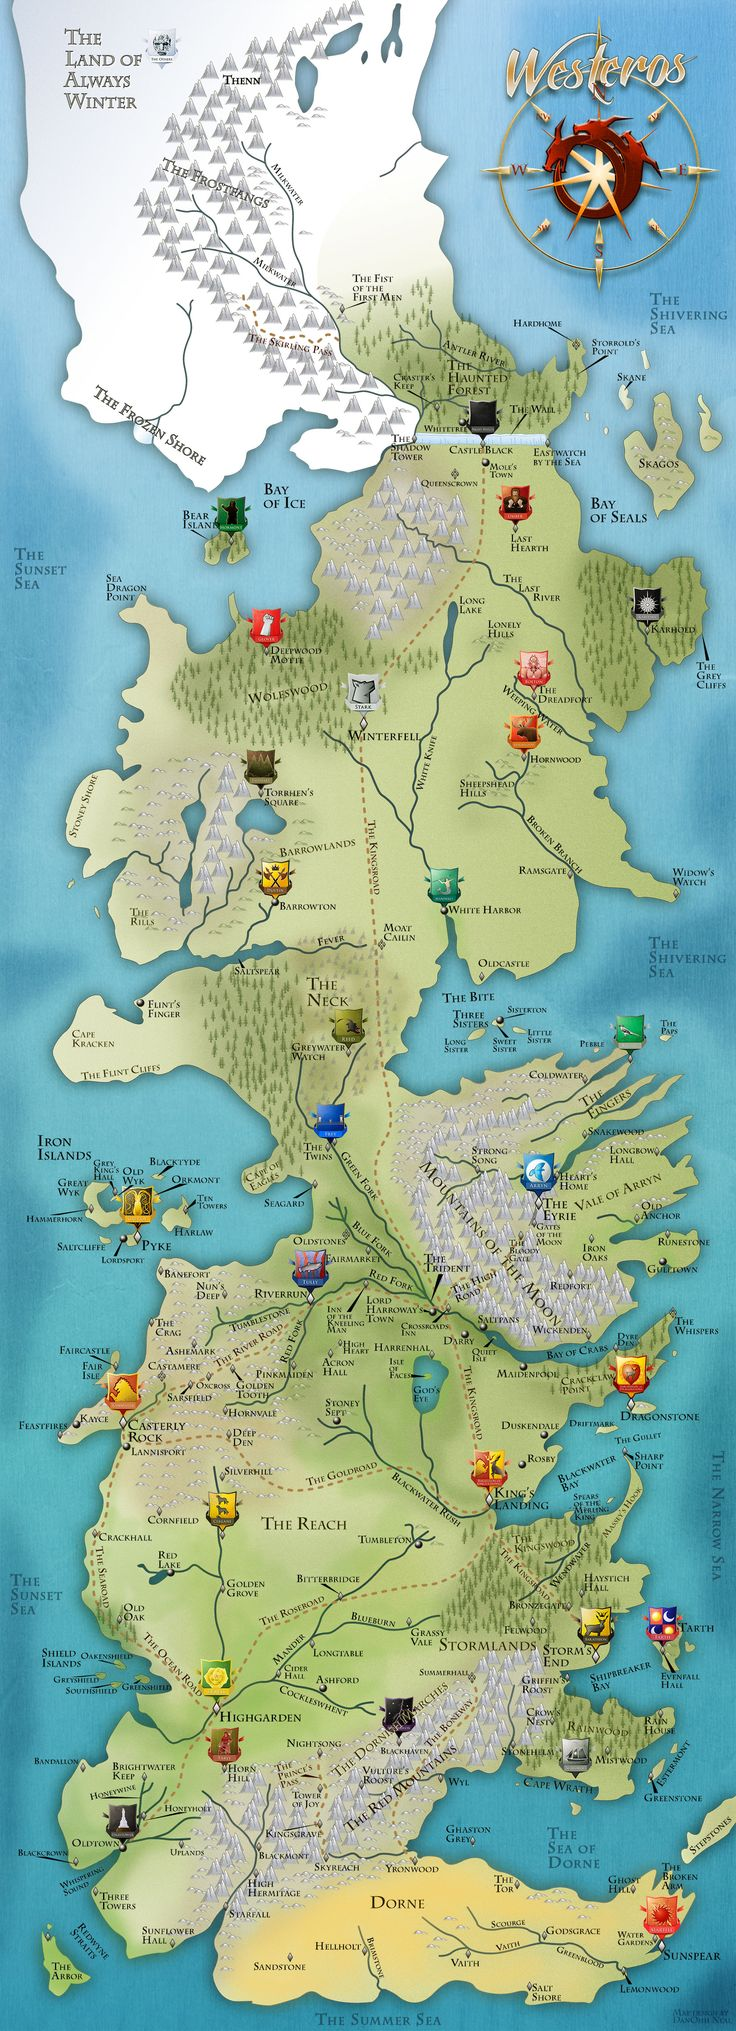 Más tamaños | Westeros Map | Flickr: ¡Intercambio de fotos!